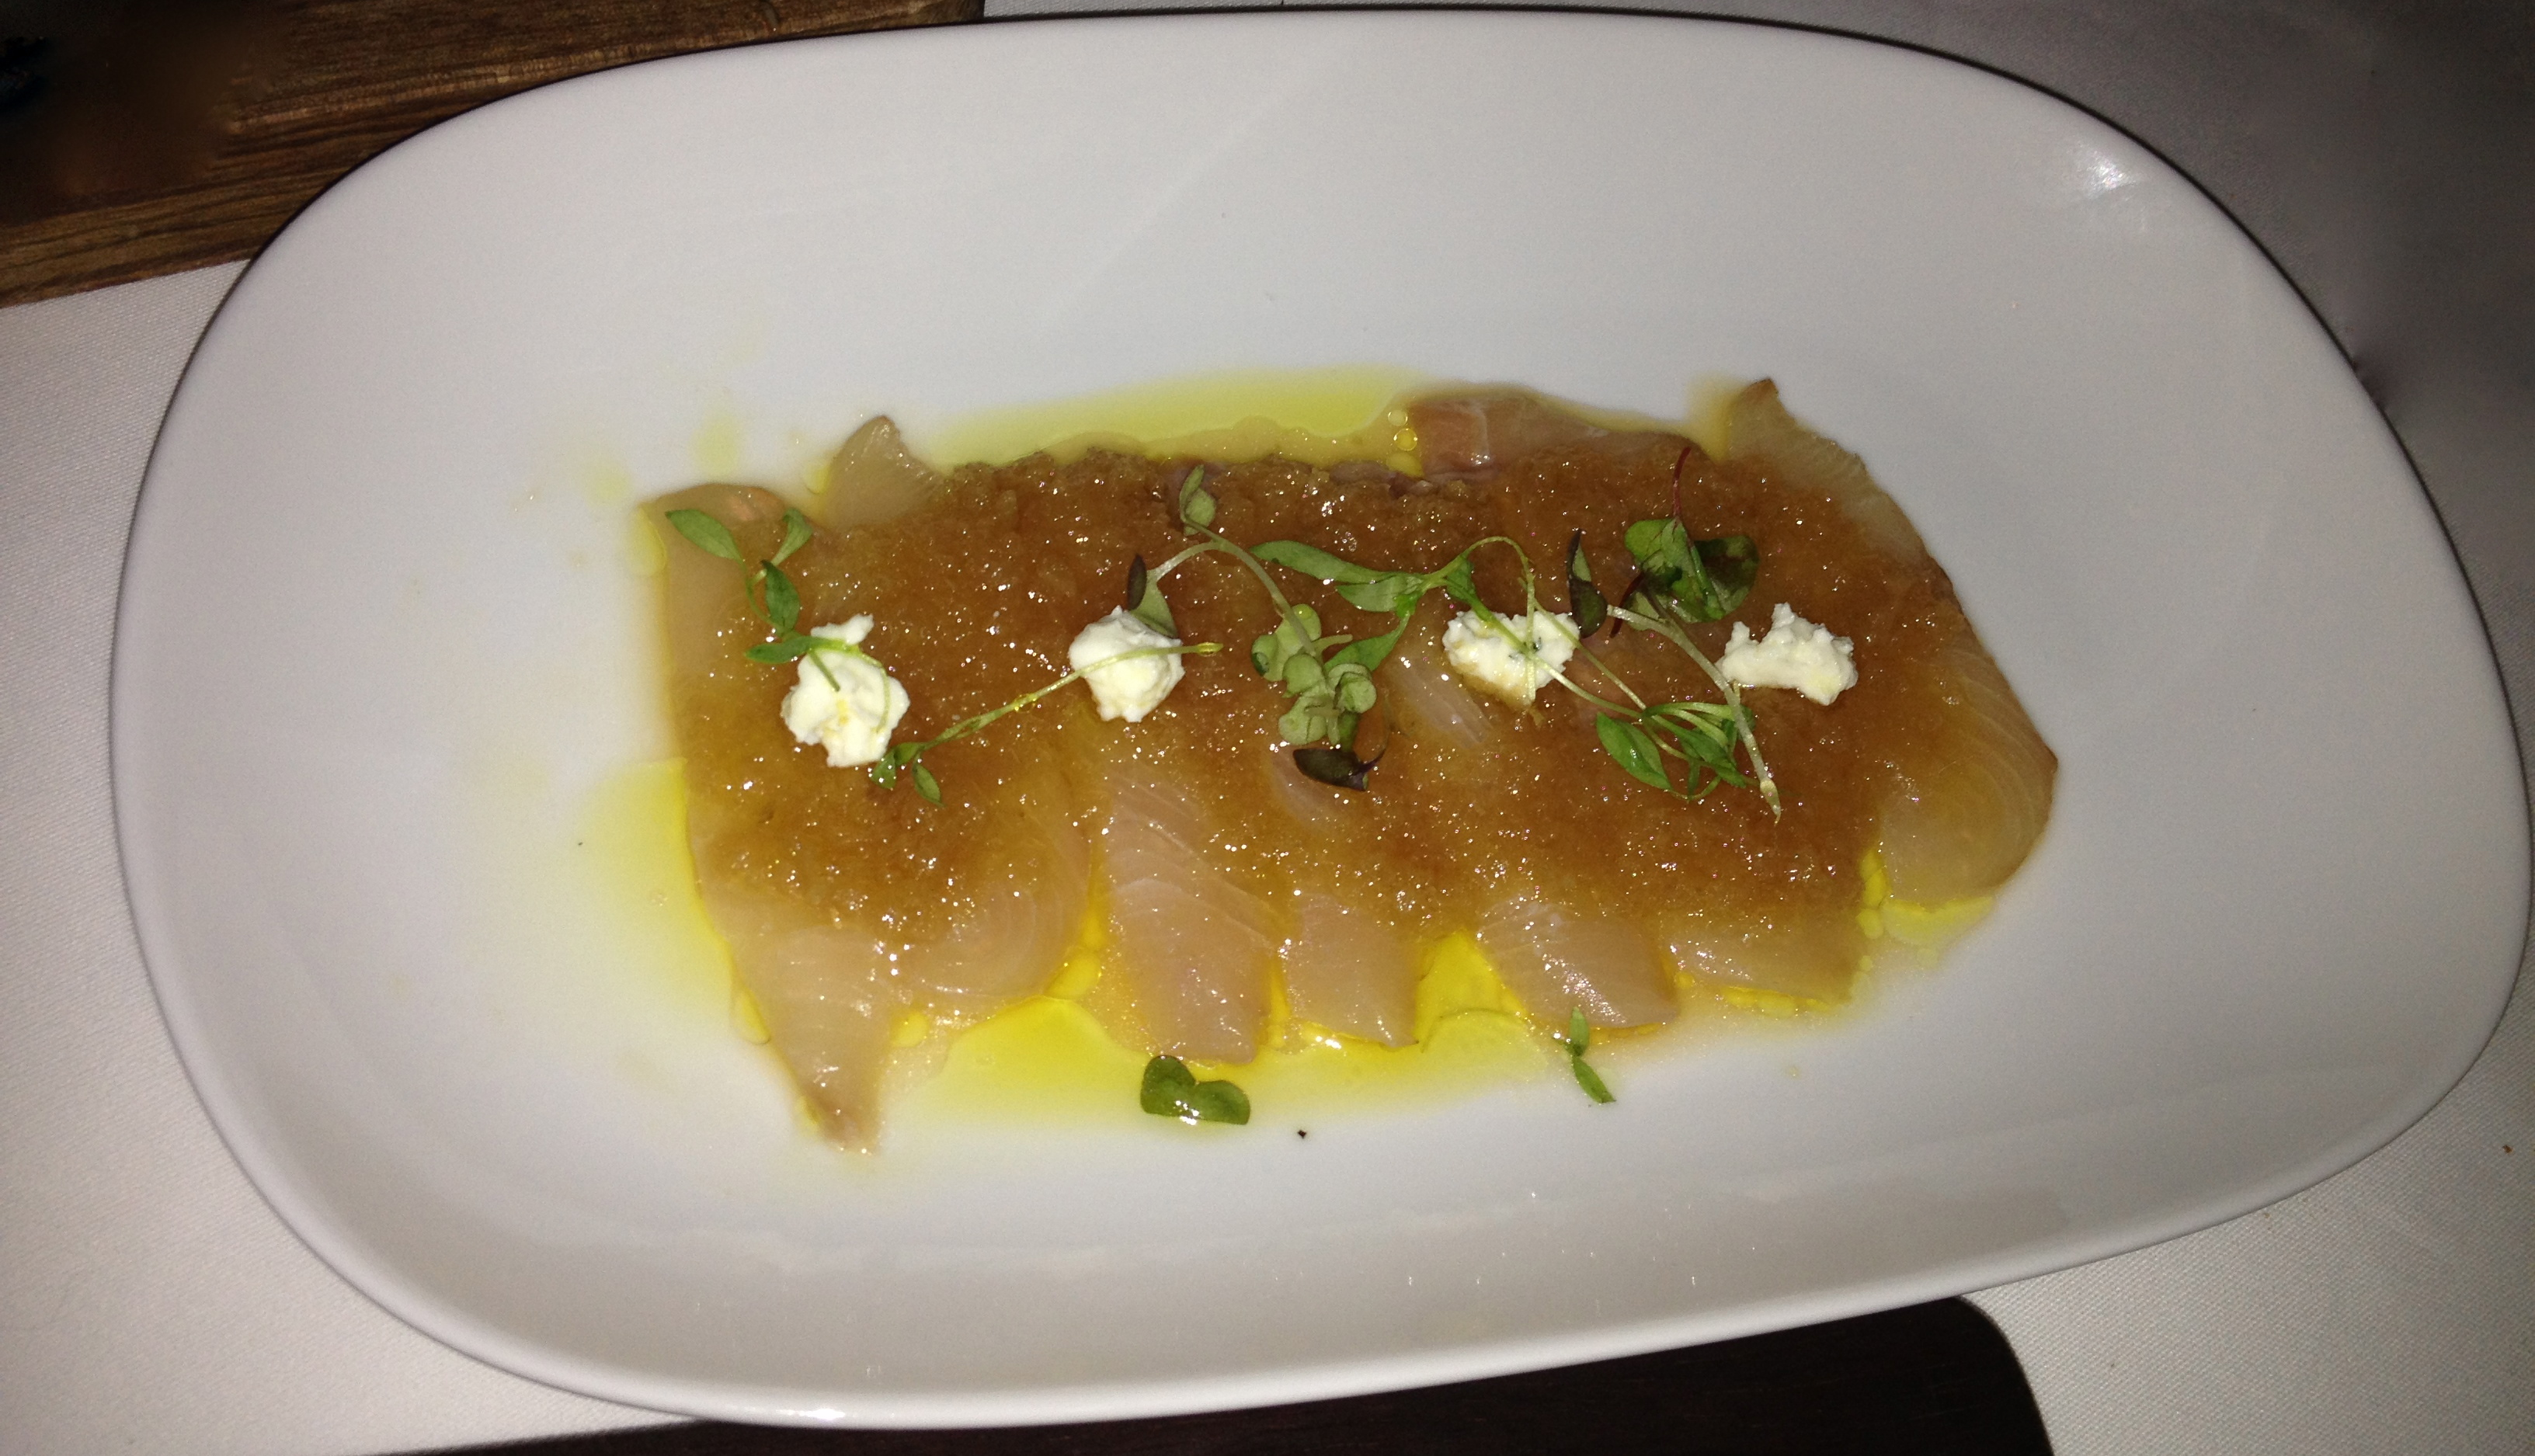 Sashimi of kingfish, ginger, eschallot and goats feta